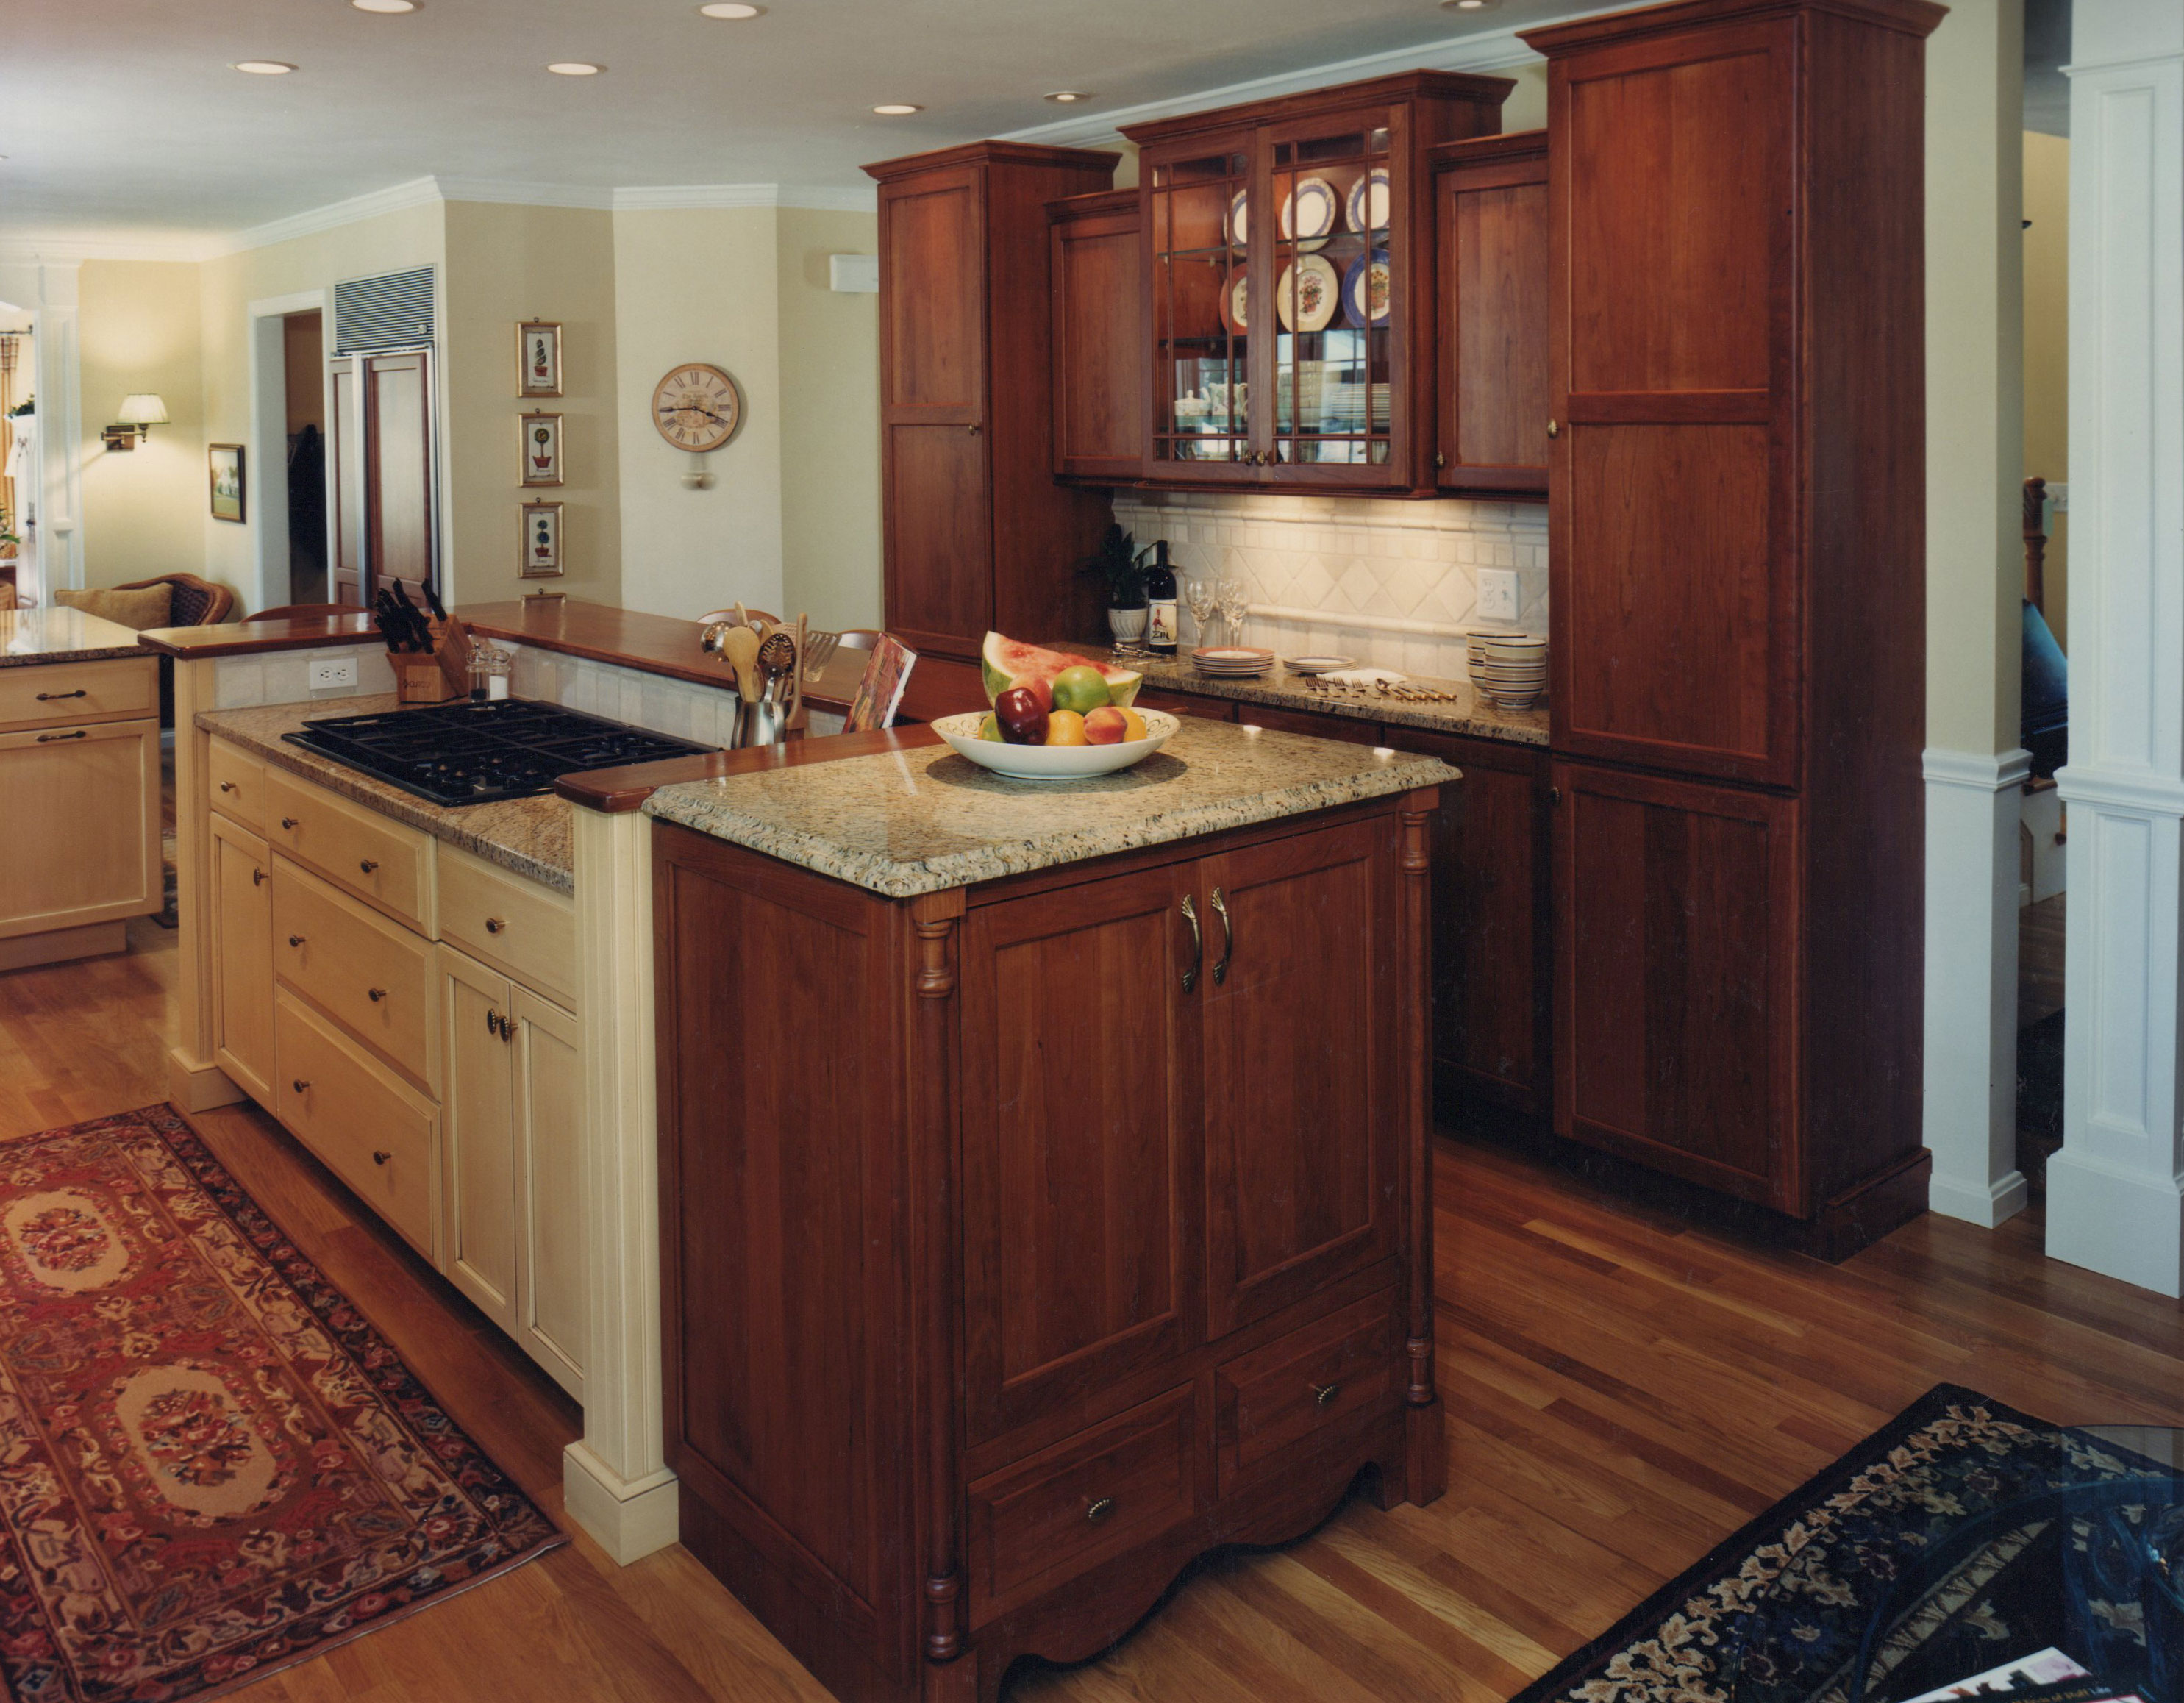 kitchen island with cooktop digital timers country  currier kitchens